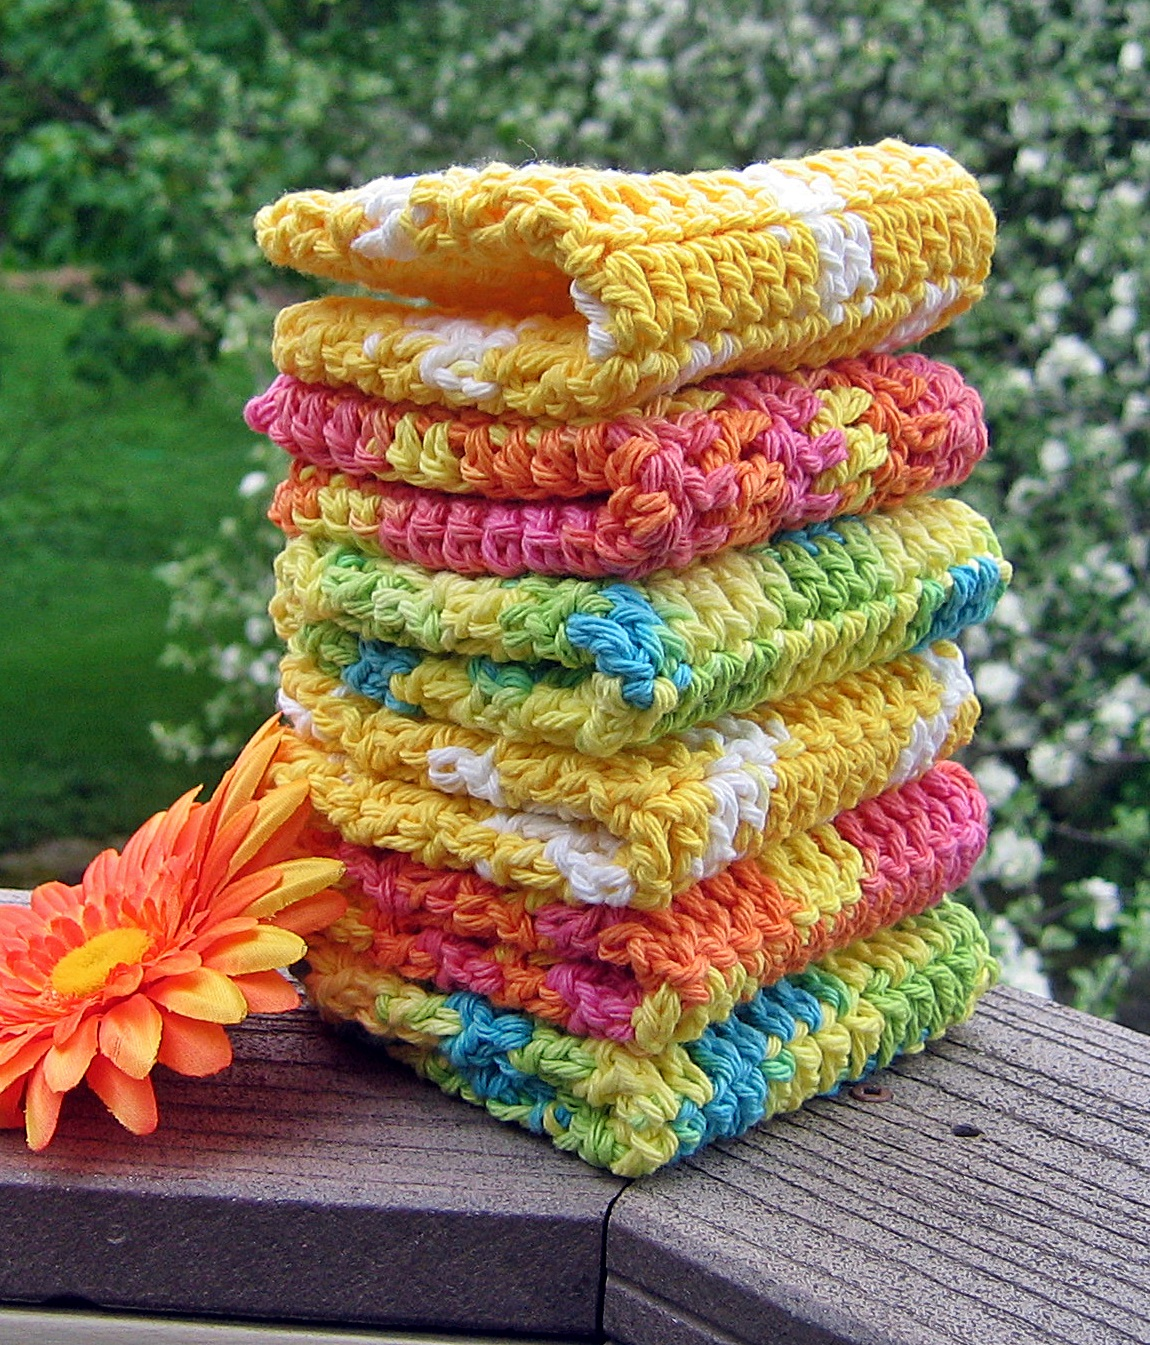 Washcloths Crochet: Handmade By Annabelle: 8 Steps To Beautiful Crochet Washcloths